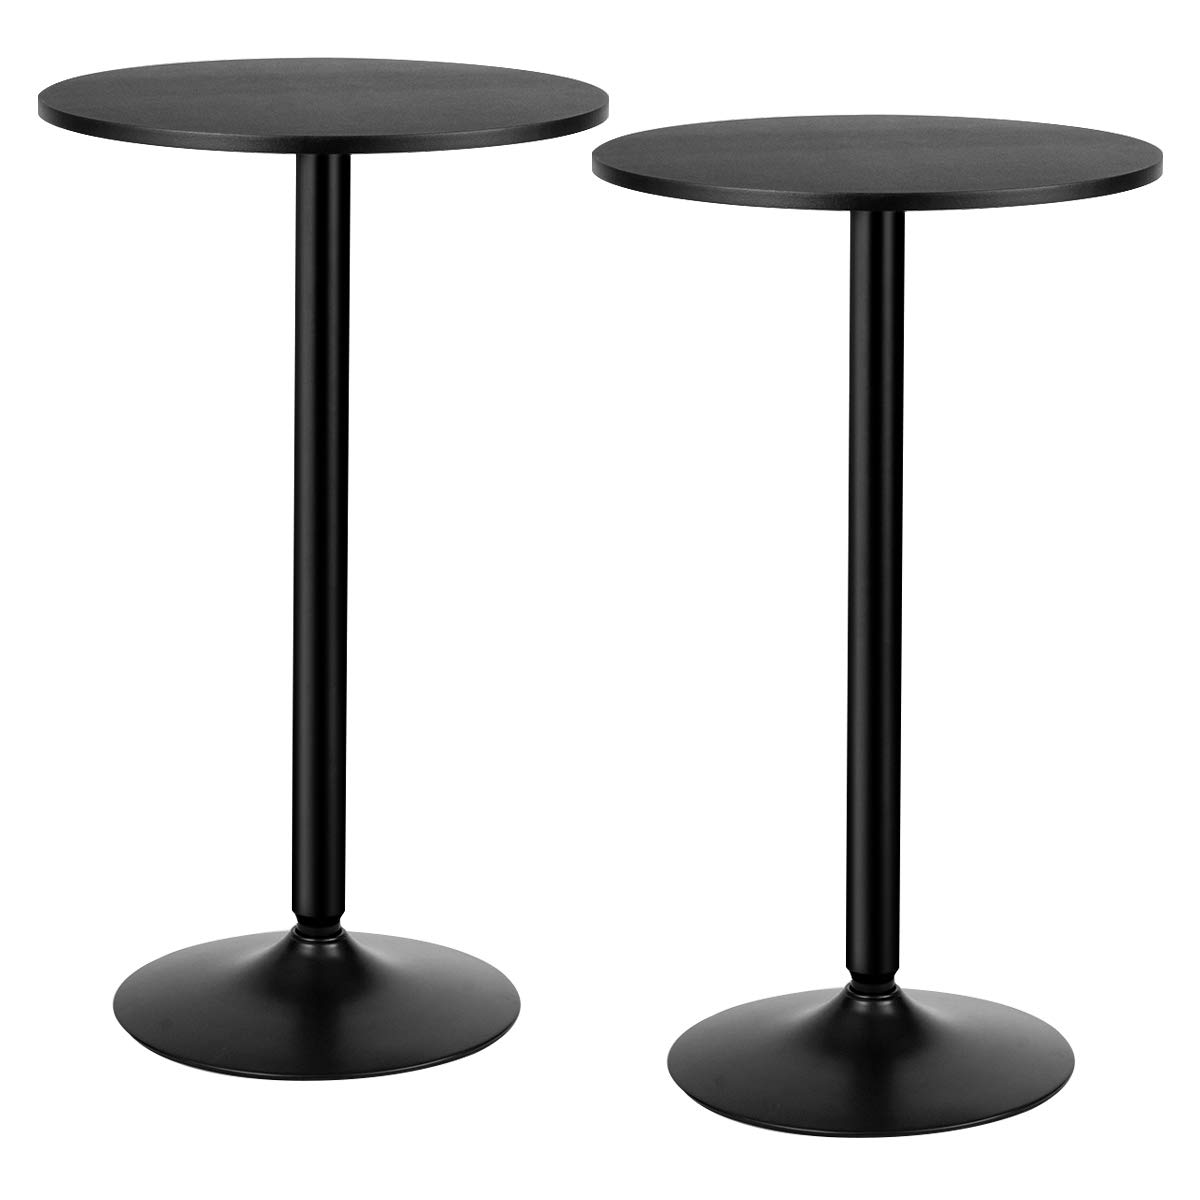 Giantex Pub and Bar Table 2Pcs 24-Inch 40-Inch Height Modern Style Round Top Standing Circular Cocktail Table Suitable for Living Room, Kitchen, Outdoor& Indoor Bistro Table (2) by Giantex